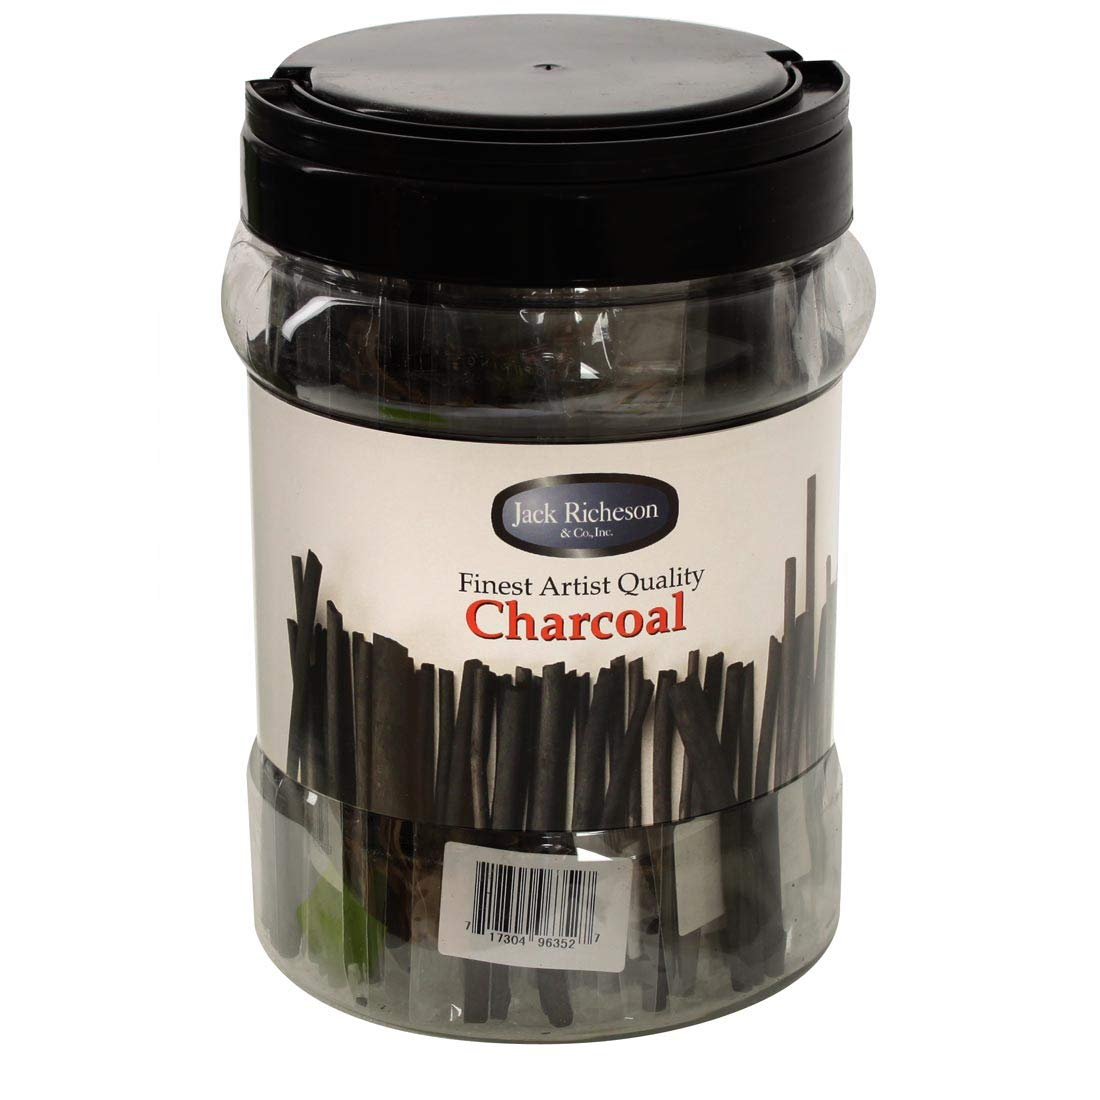 Jack Richeson Non-Toxic Medium Vine Charcoal Stick with Canister, 6 x 3/16 in, Black, Pack of 144 by Nasco